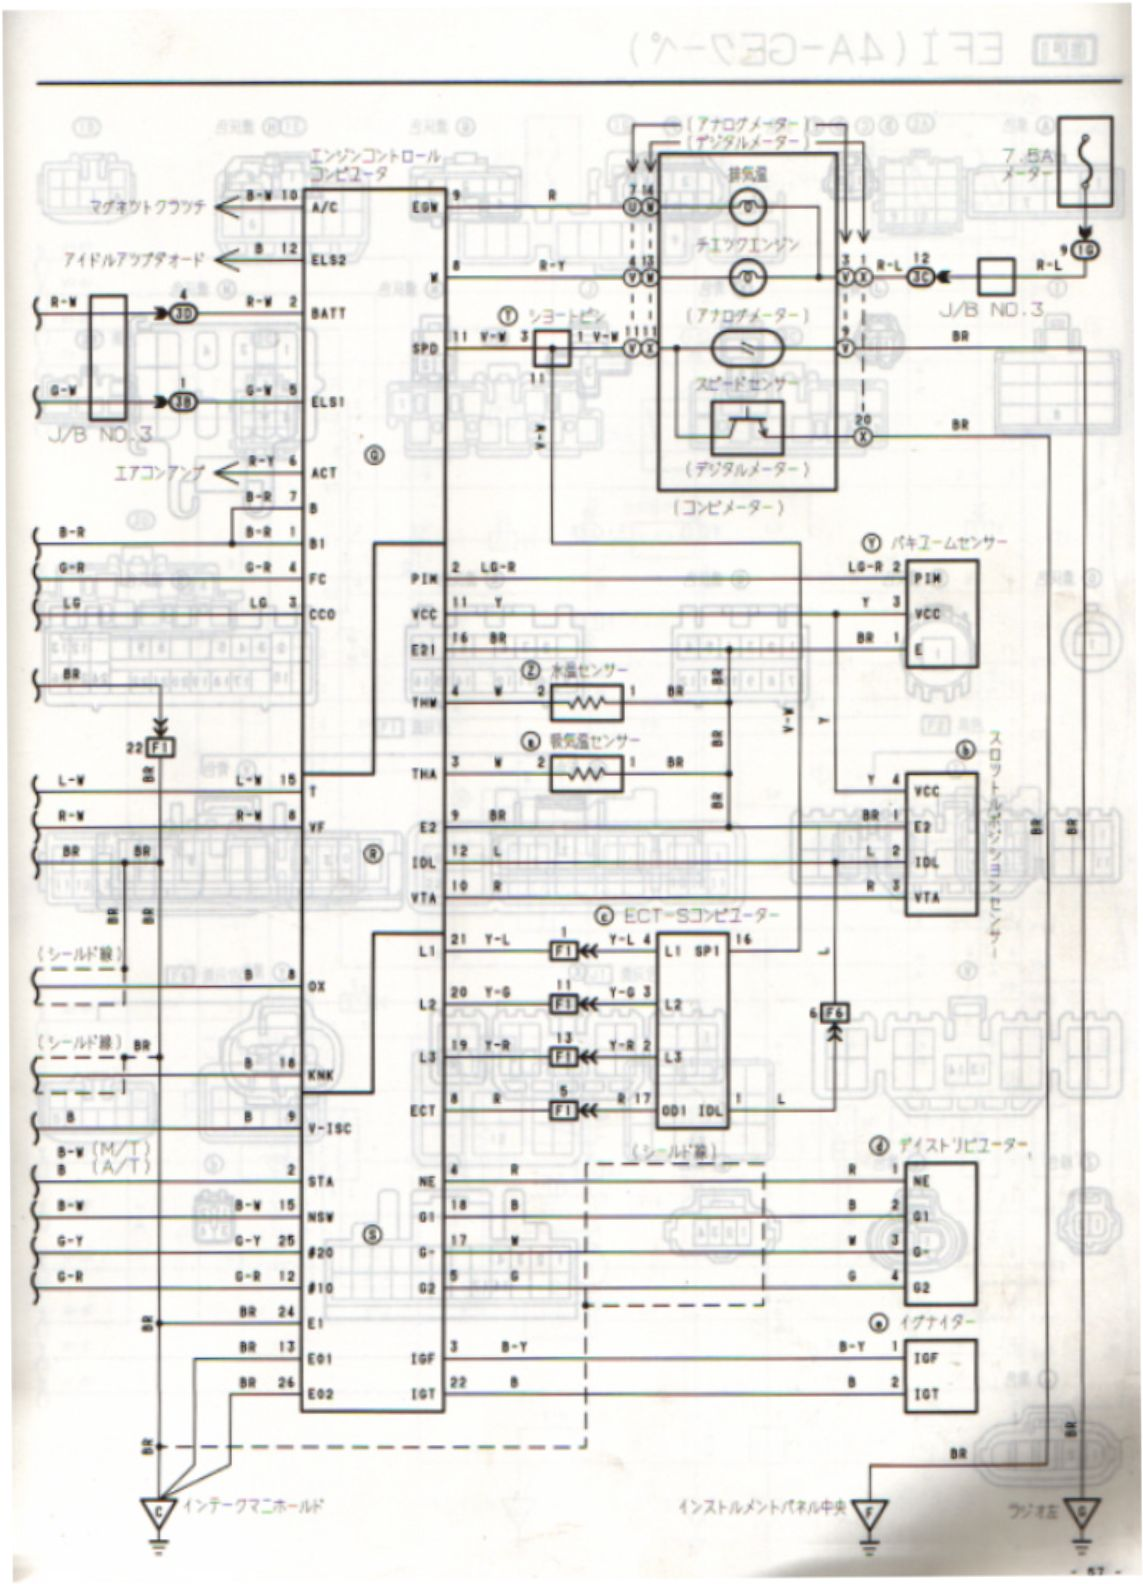 Usdm 4age Wiring Diagram 24 Images Auto Electrical Schematic Diagrams Ae92 Japan Late Ecub 4a Ge 16v Non Tvis Ecu Pin Identification Club4ag